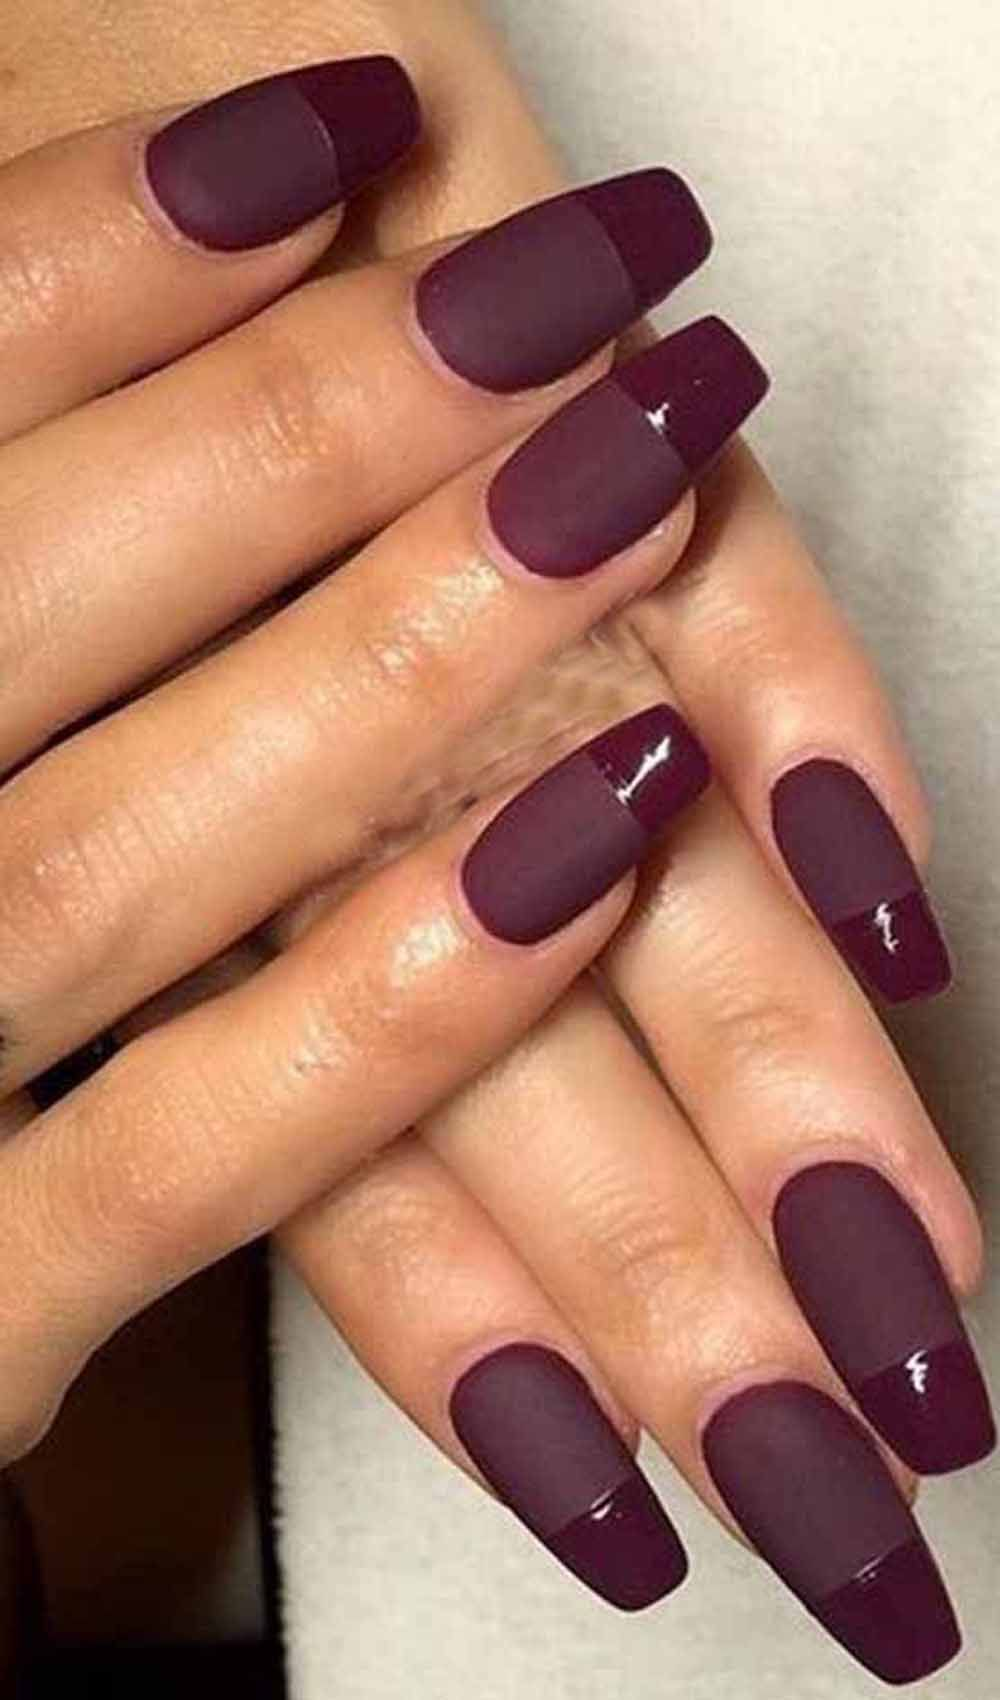 11 Astonishing Dark Red Colored Nail Designs You Should Try Nails Burgundy Nails Nail Designs